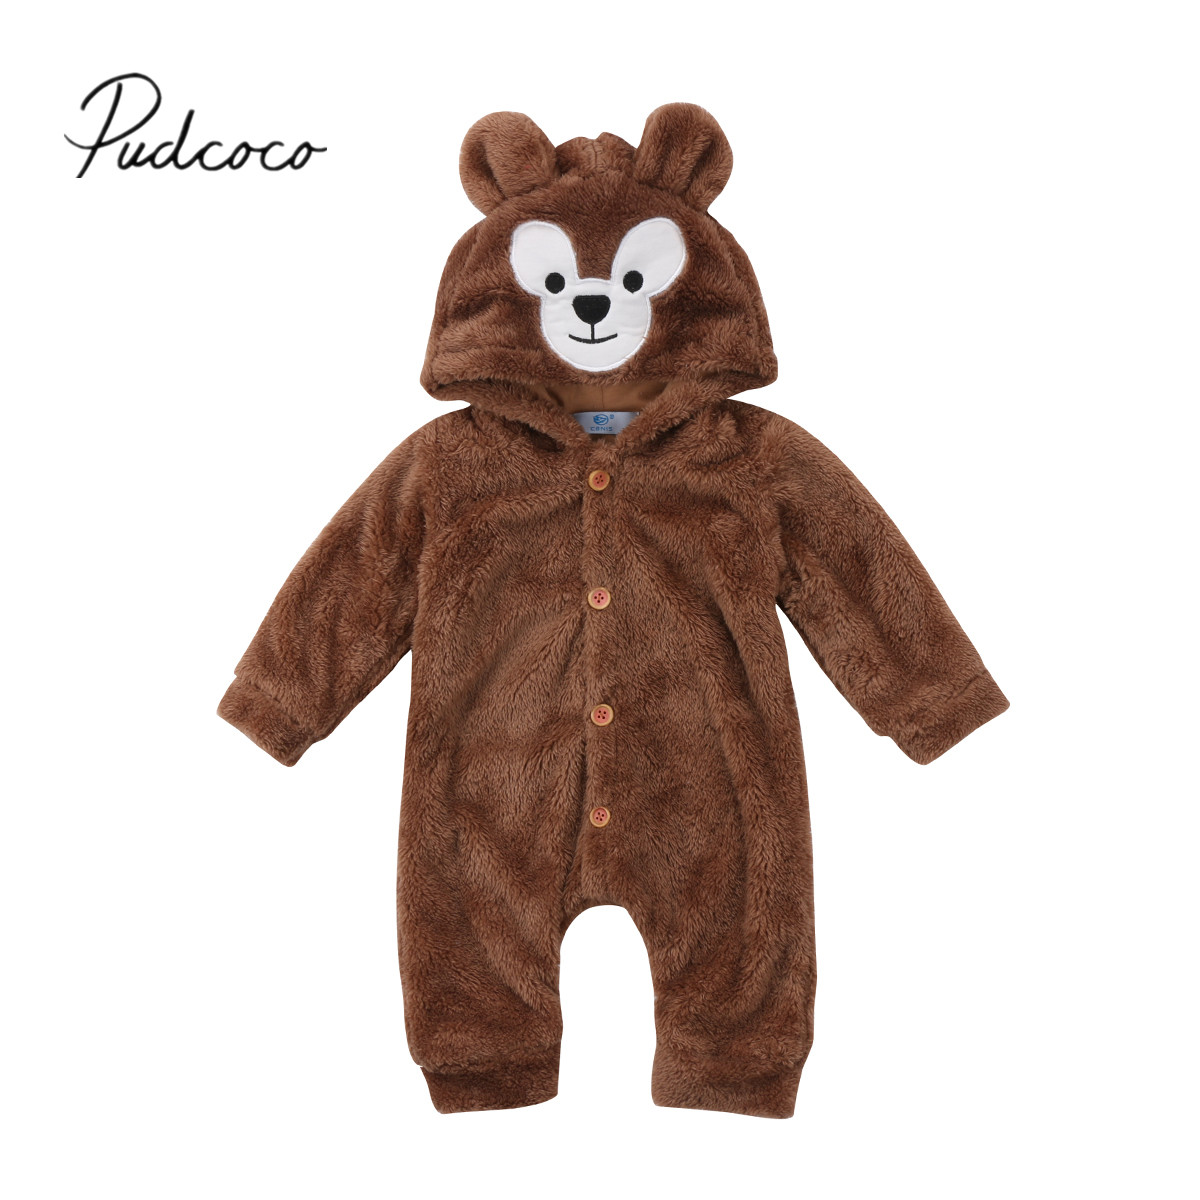 2018 Brand New Newborn Toddler Infant Baby Boys Girls Fleece Romper Hooded Jumpsuit Warm Cute Bear Outfits Winter Clothes 0-24M 6m 3years baby winter overall toddler warm velvet bear hooded rompers infant long pants kids girls boys jumpsuit pink blue